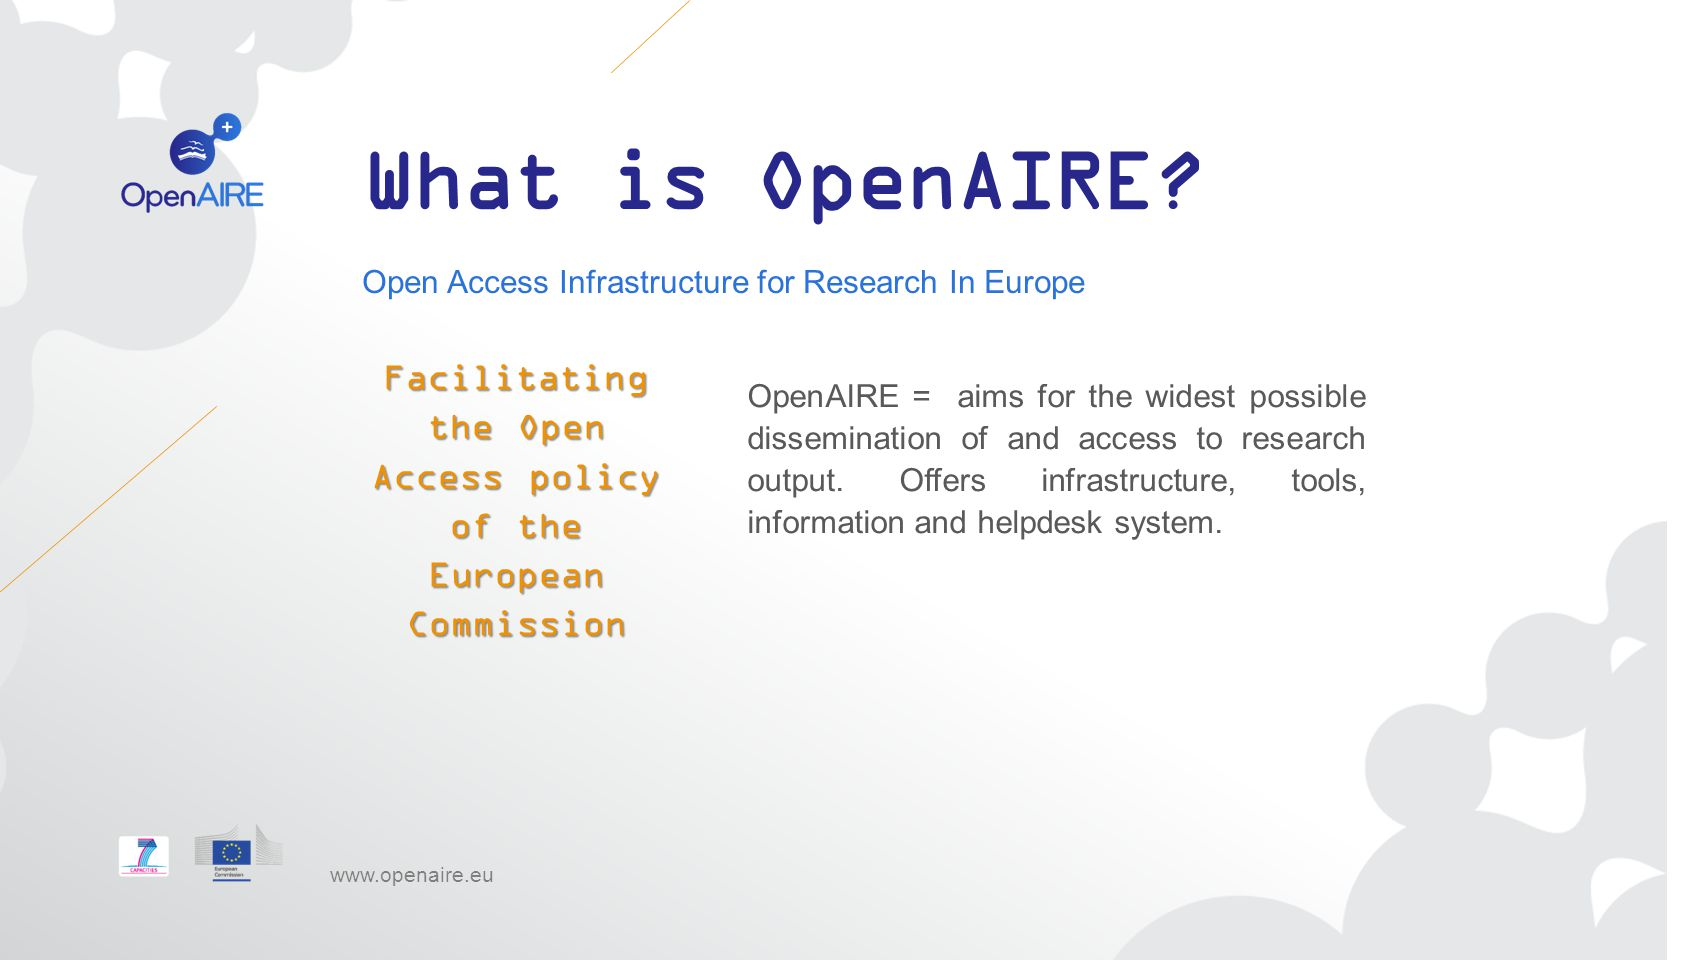 Facilitating the Open Access policy of the European Commission